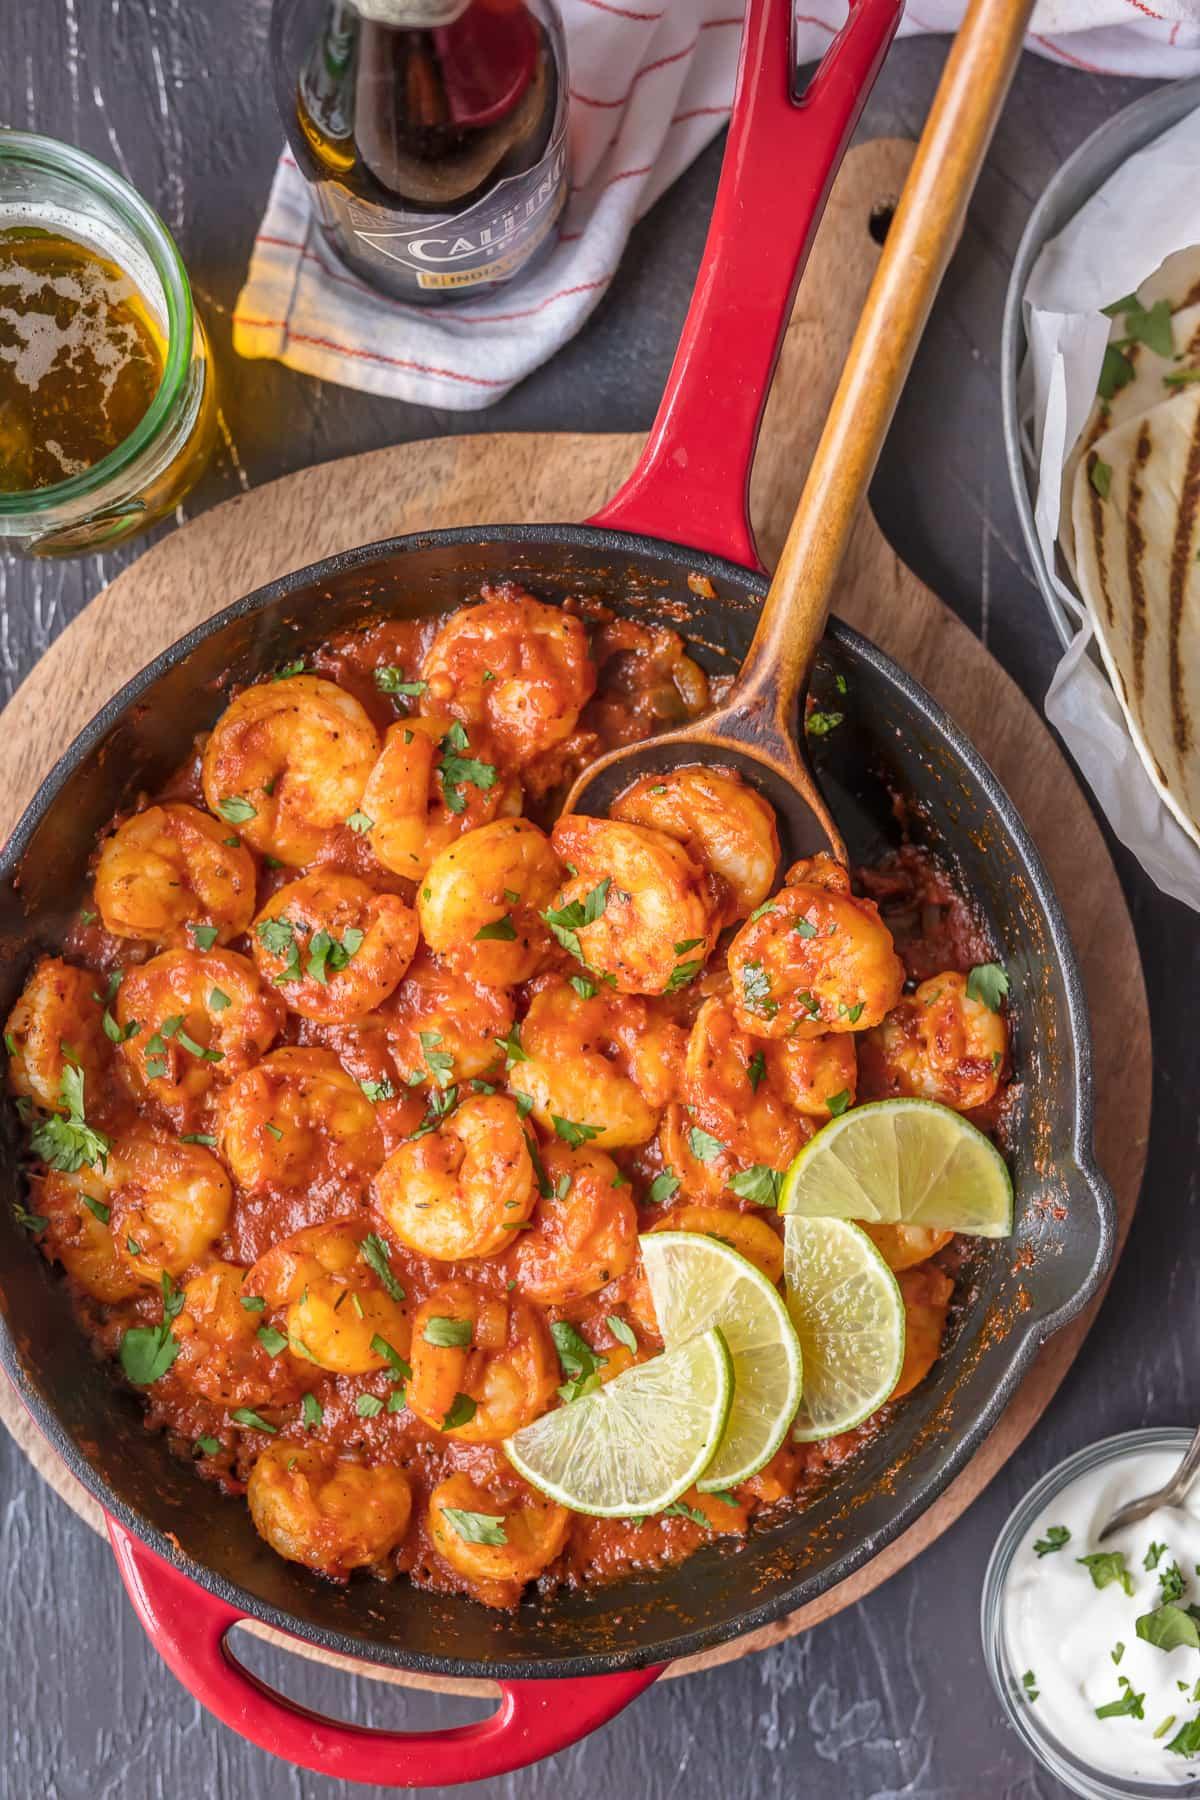 Healthy Dinners To Make At Home  Skillet Chipotle Shrimp Easy Spicy Shrimp [VIDEO